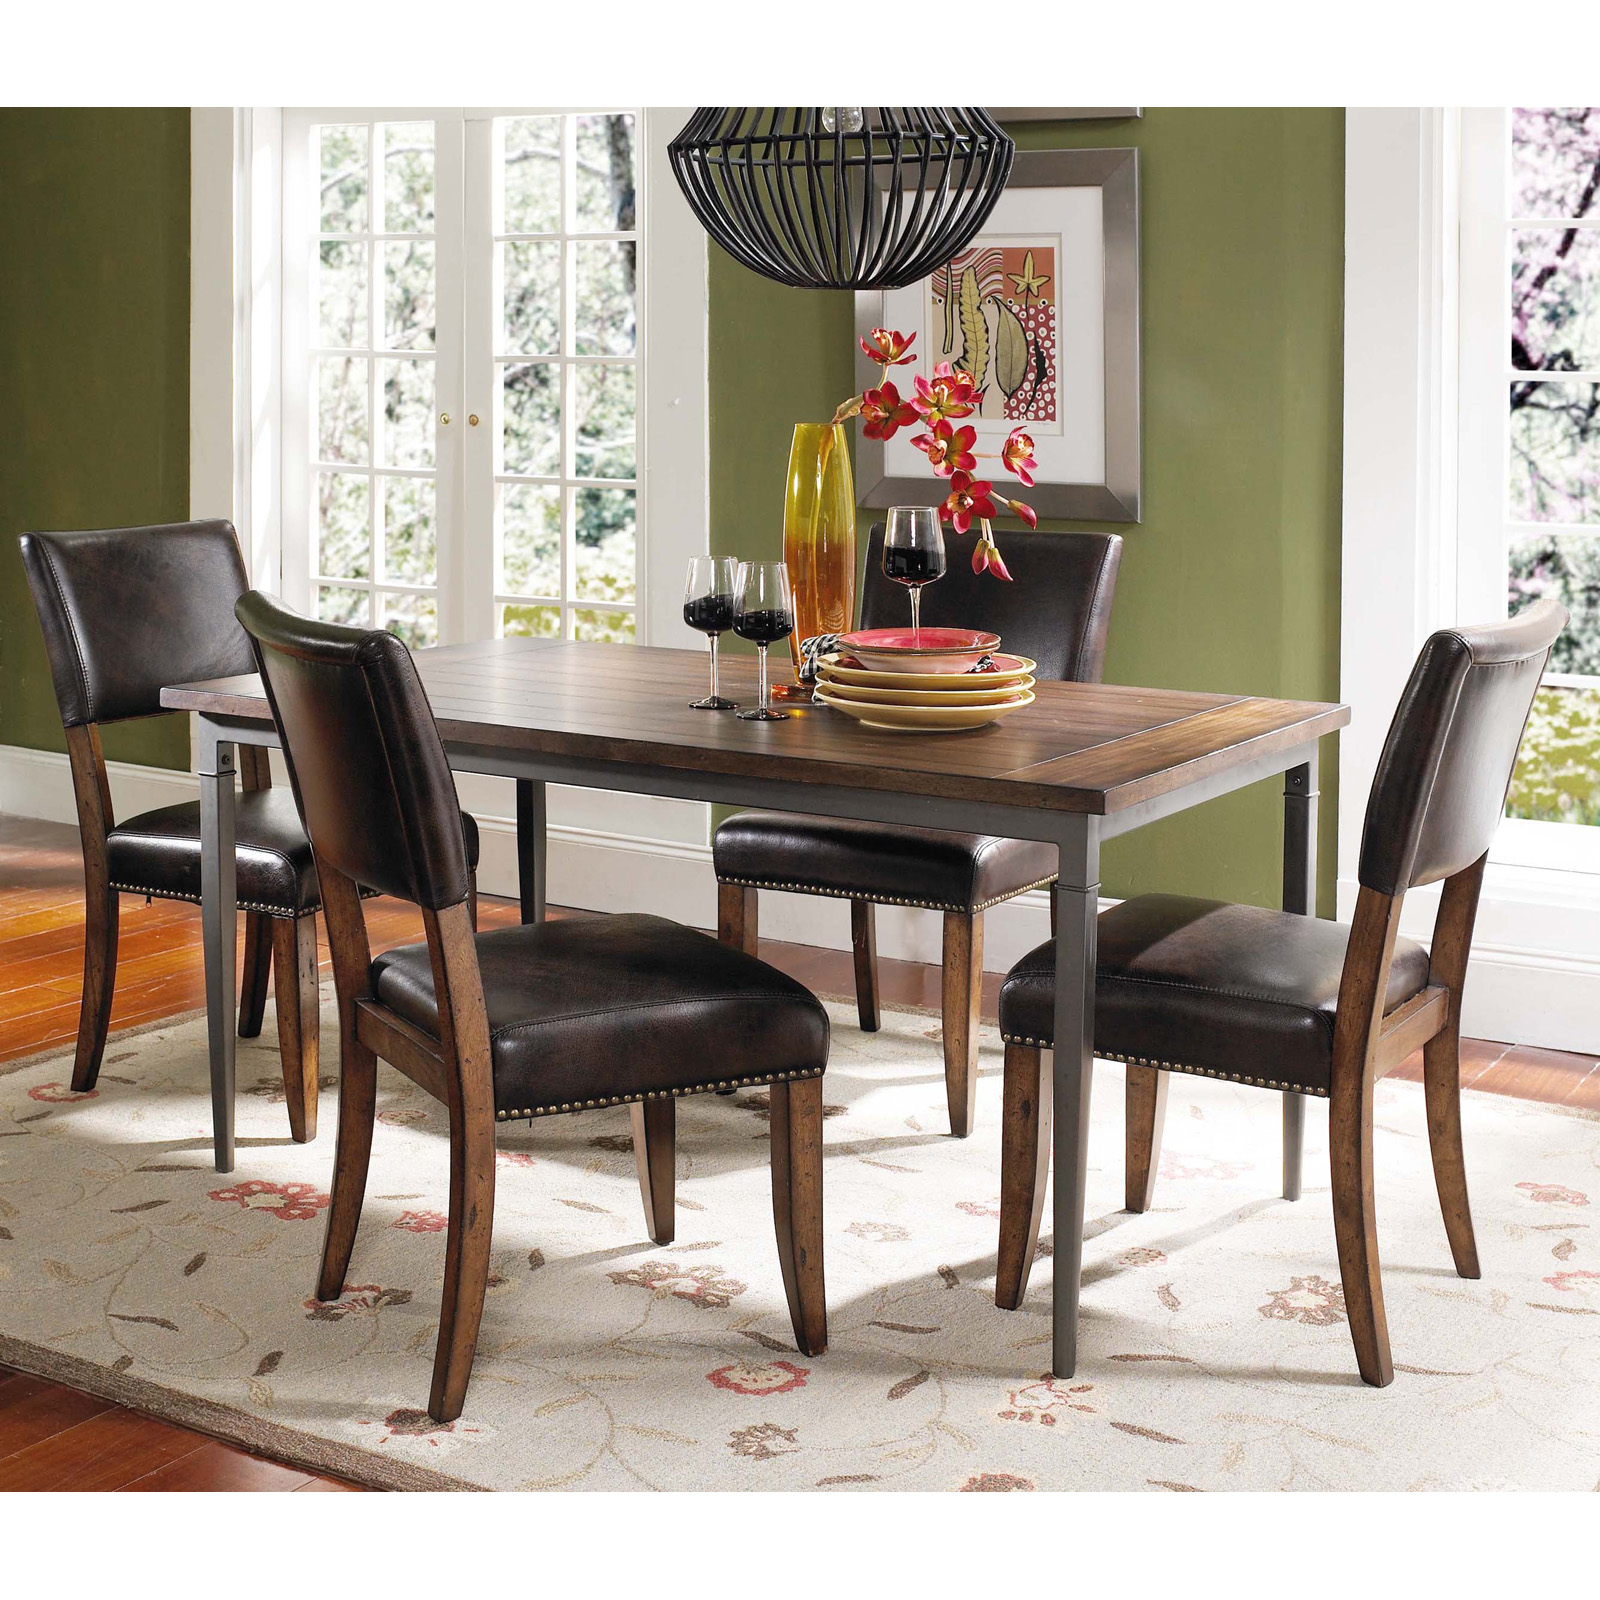 Wood And Metal Dining Table Set With Parson Chairs Dining Table Sets. Full resolution‎  file, nominally Width 1600 Height 1600 pixels, file with #A73C24.